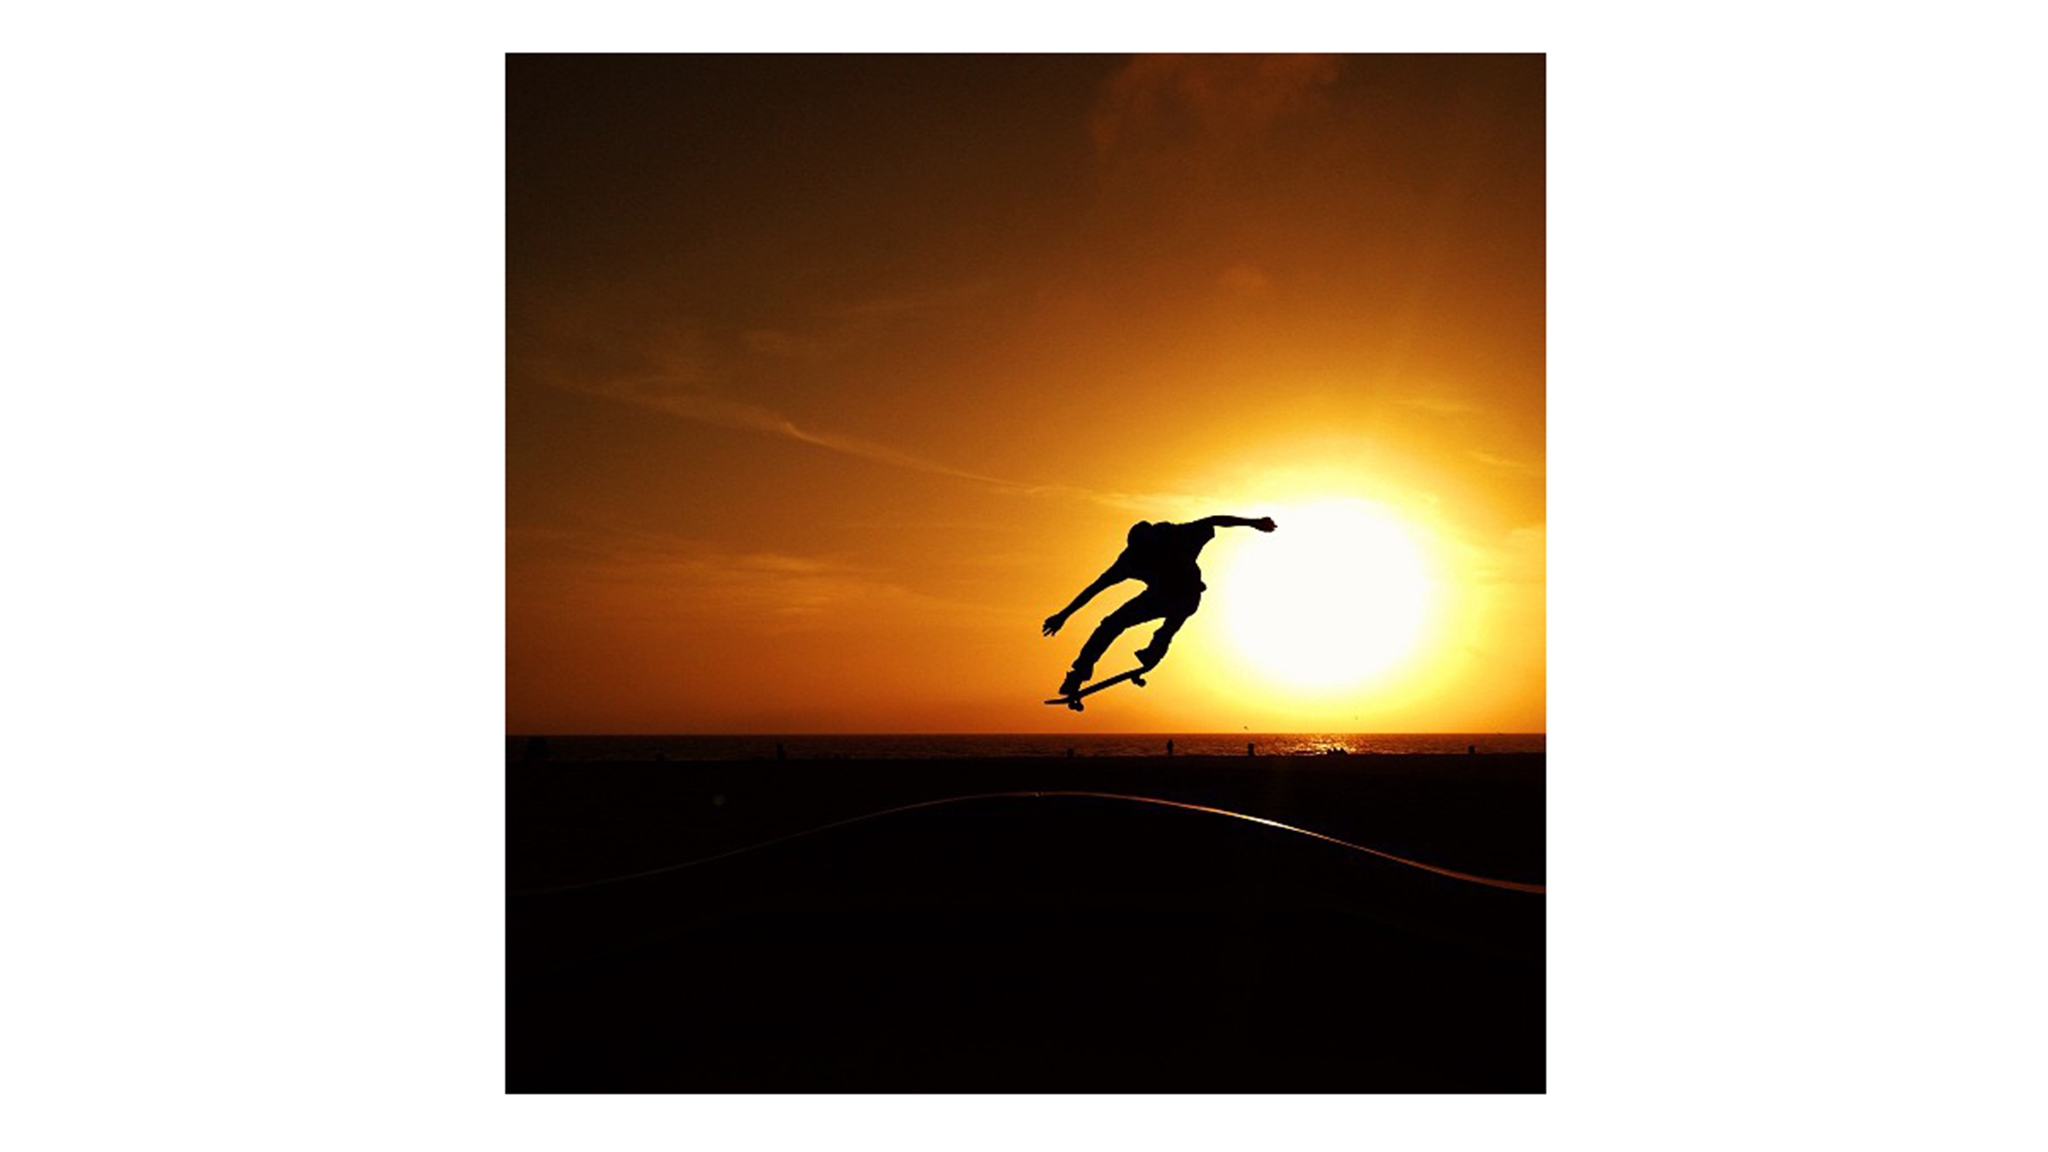 This image is very reductive, with only the silhouette, but it has that kind of feel of 'Endless Summer.' Just a kid and his skateboard. But very strong -- the silhouette is very interesting profile. -- Alex Hillinger